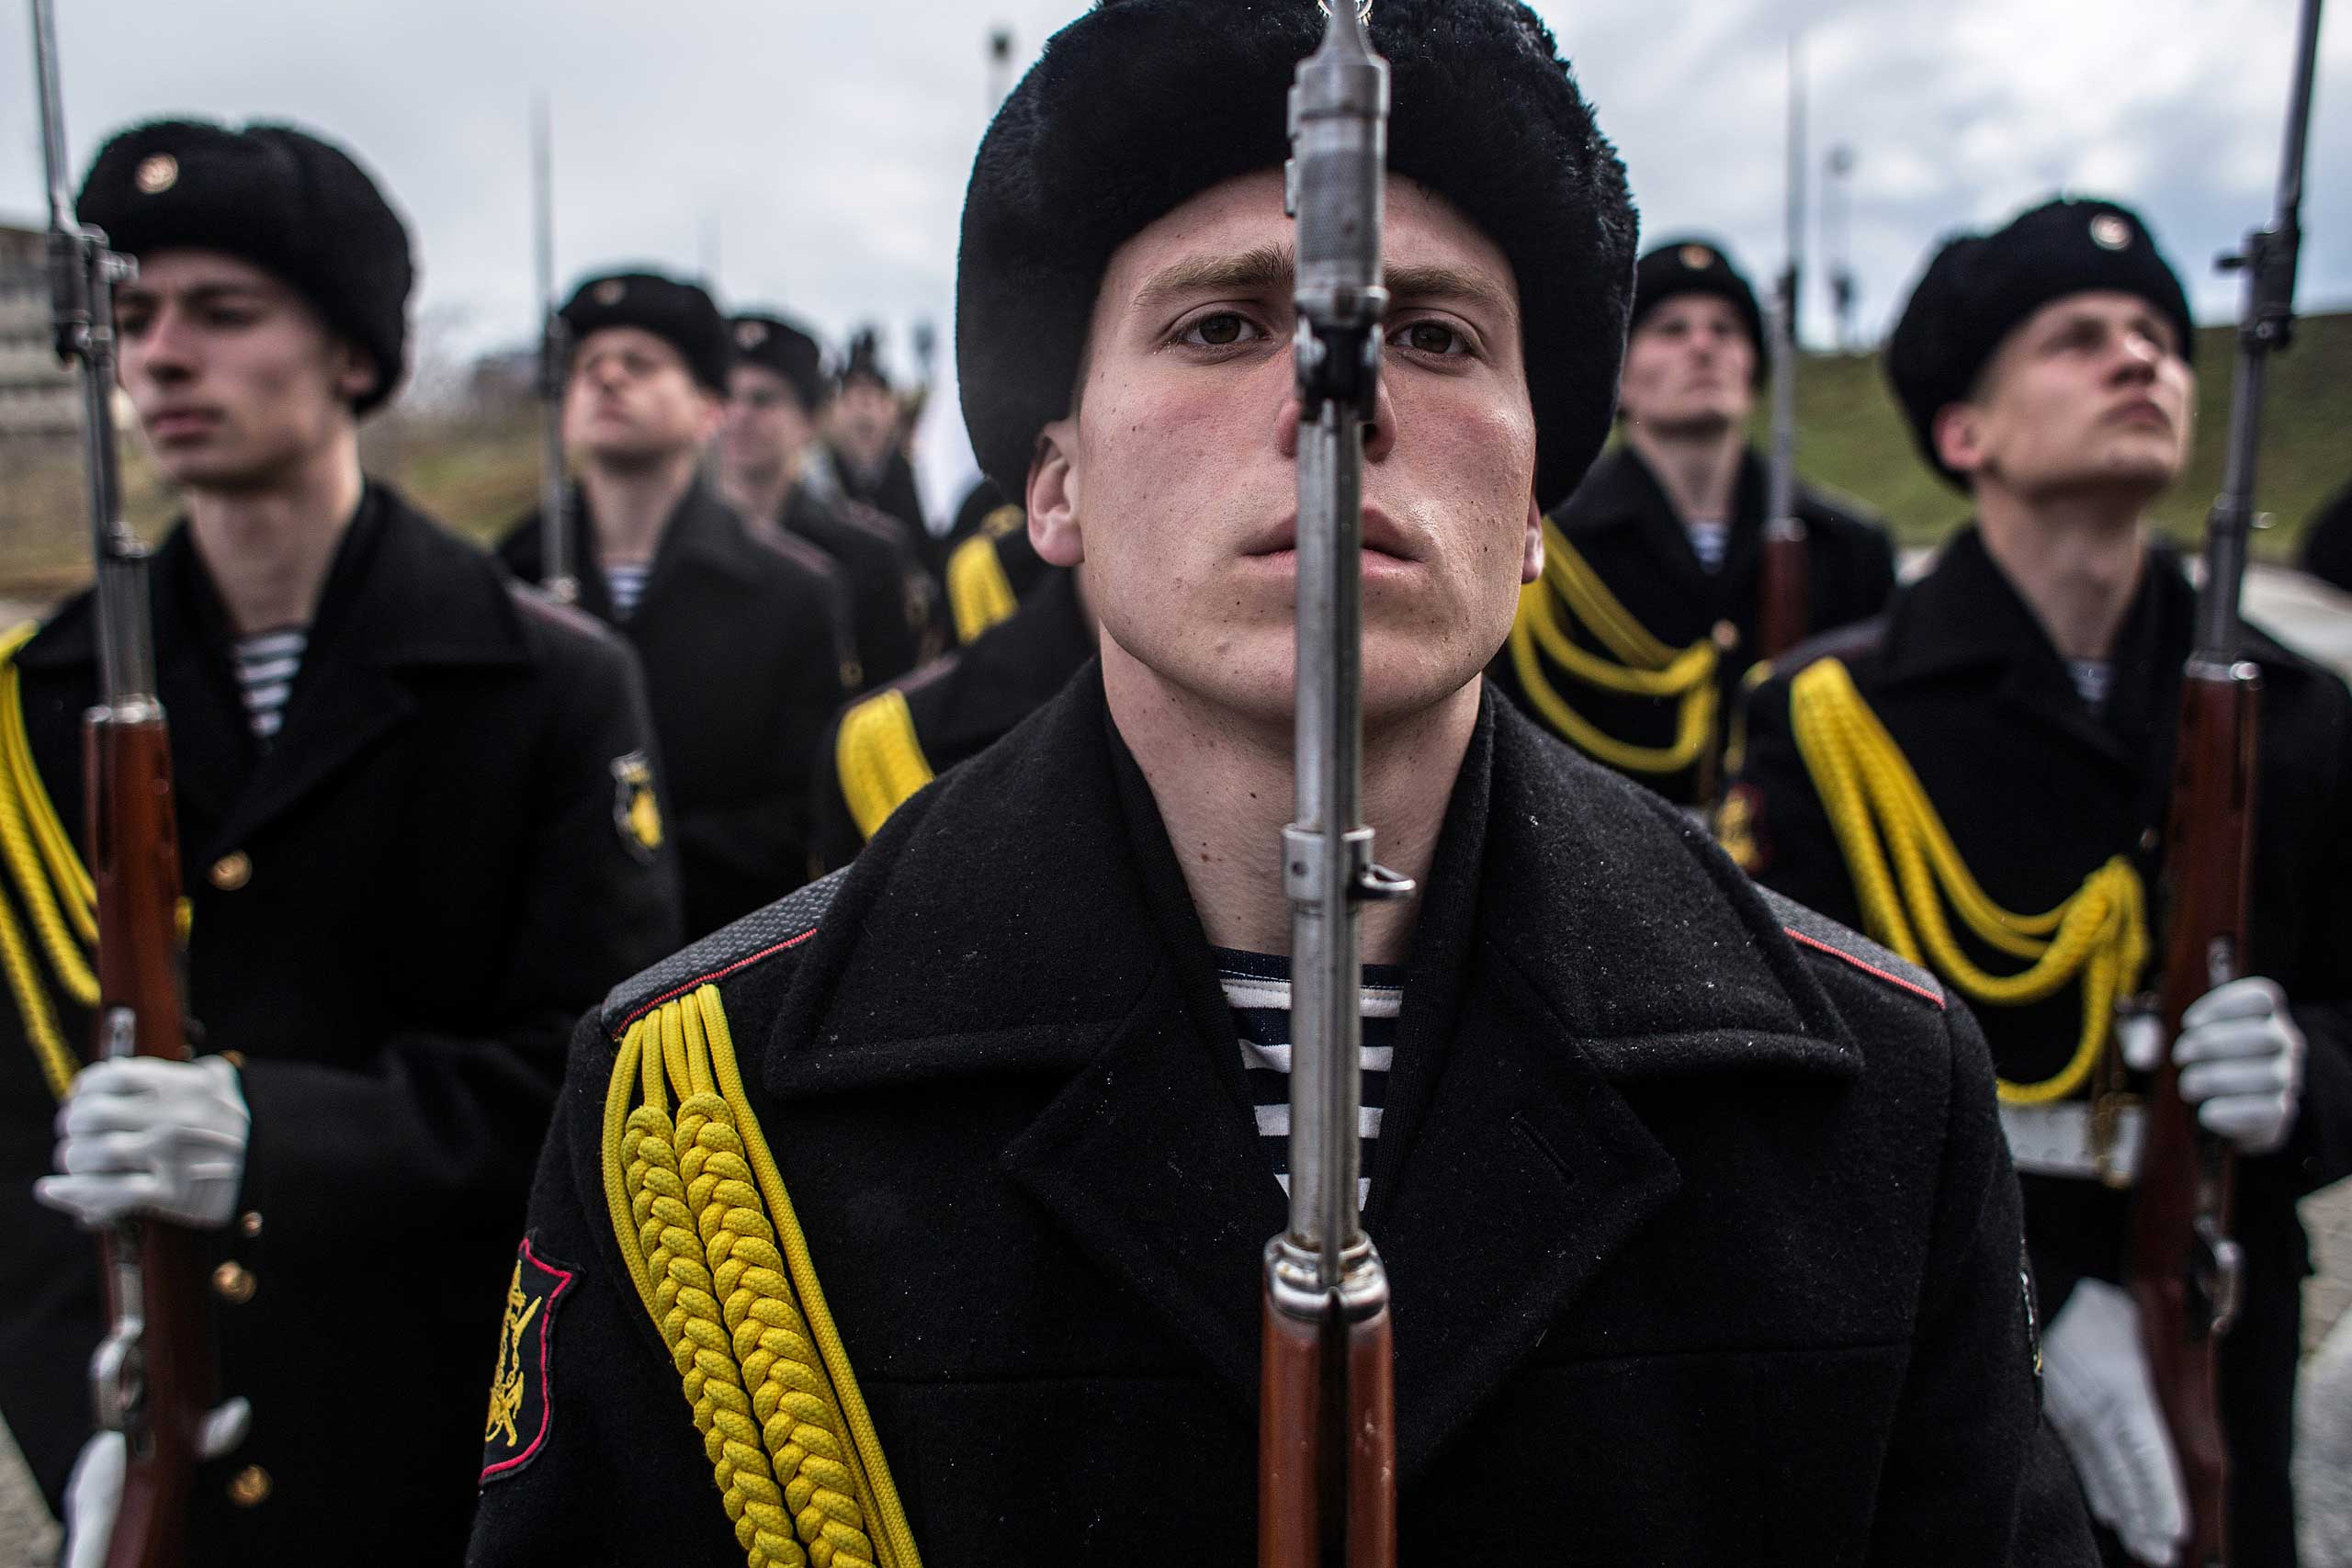 Soldiers of the honor guard prepare to march as people celebrate the first anniversary of the signing of the decree on the annexation of the Crimea by the Russian Federation, on March 18, 2015 in Sevastopol, Crimea.